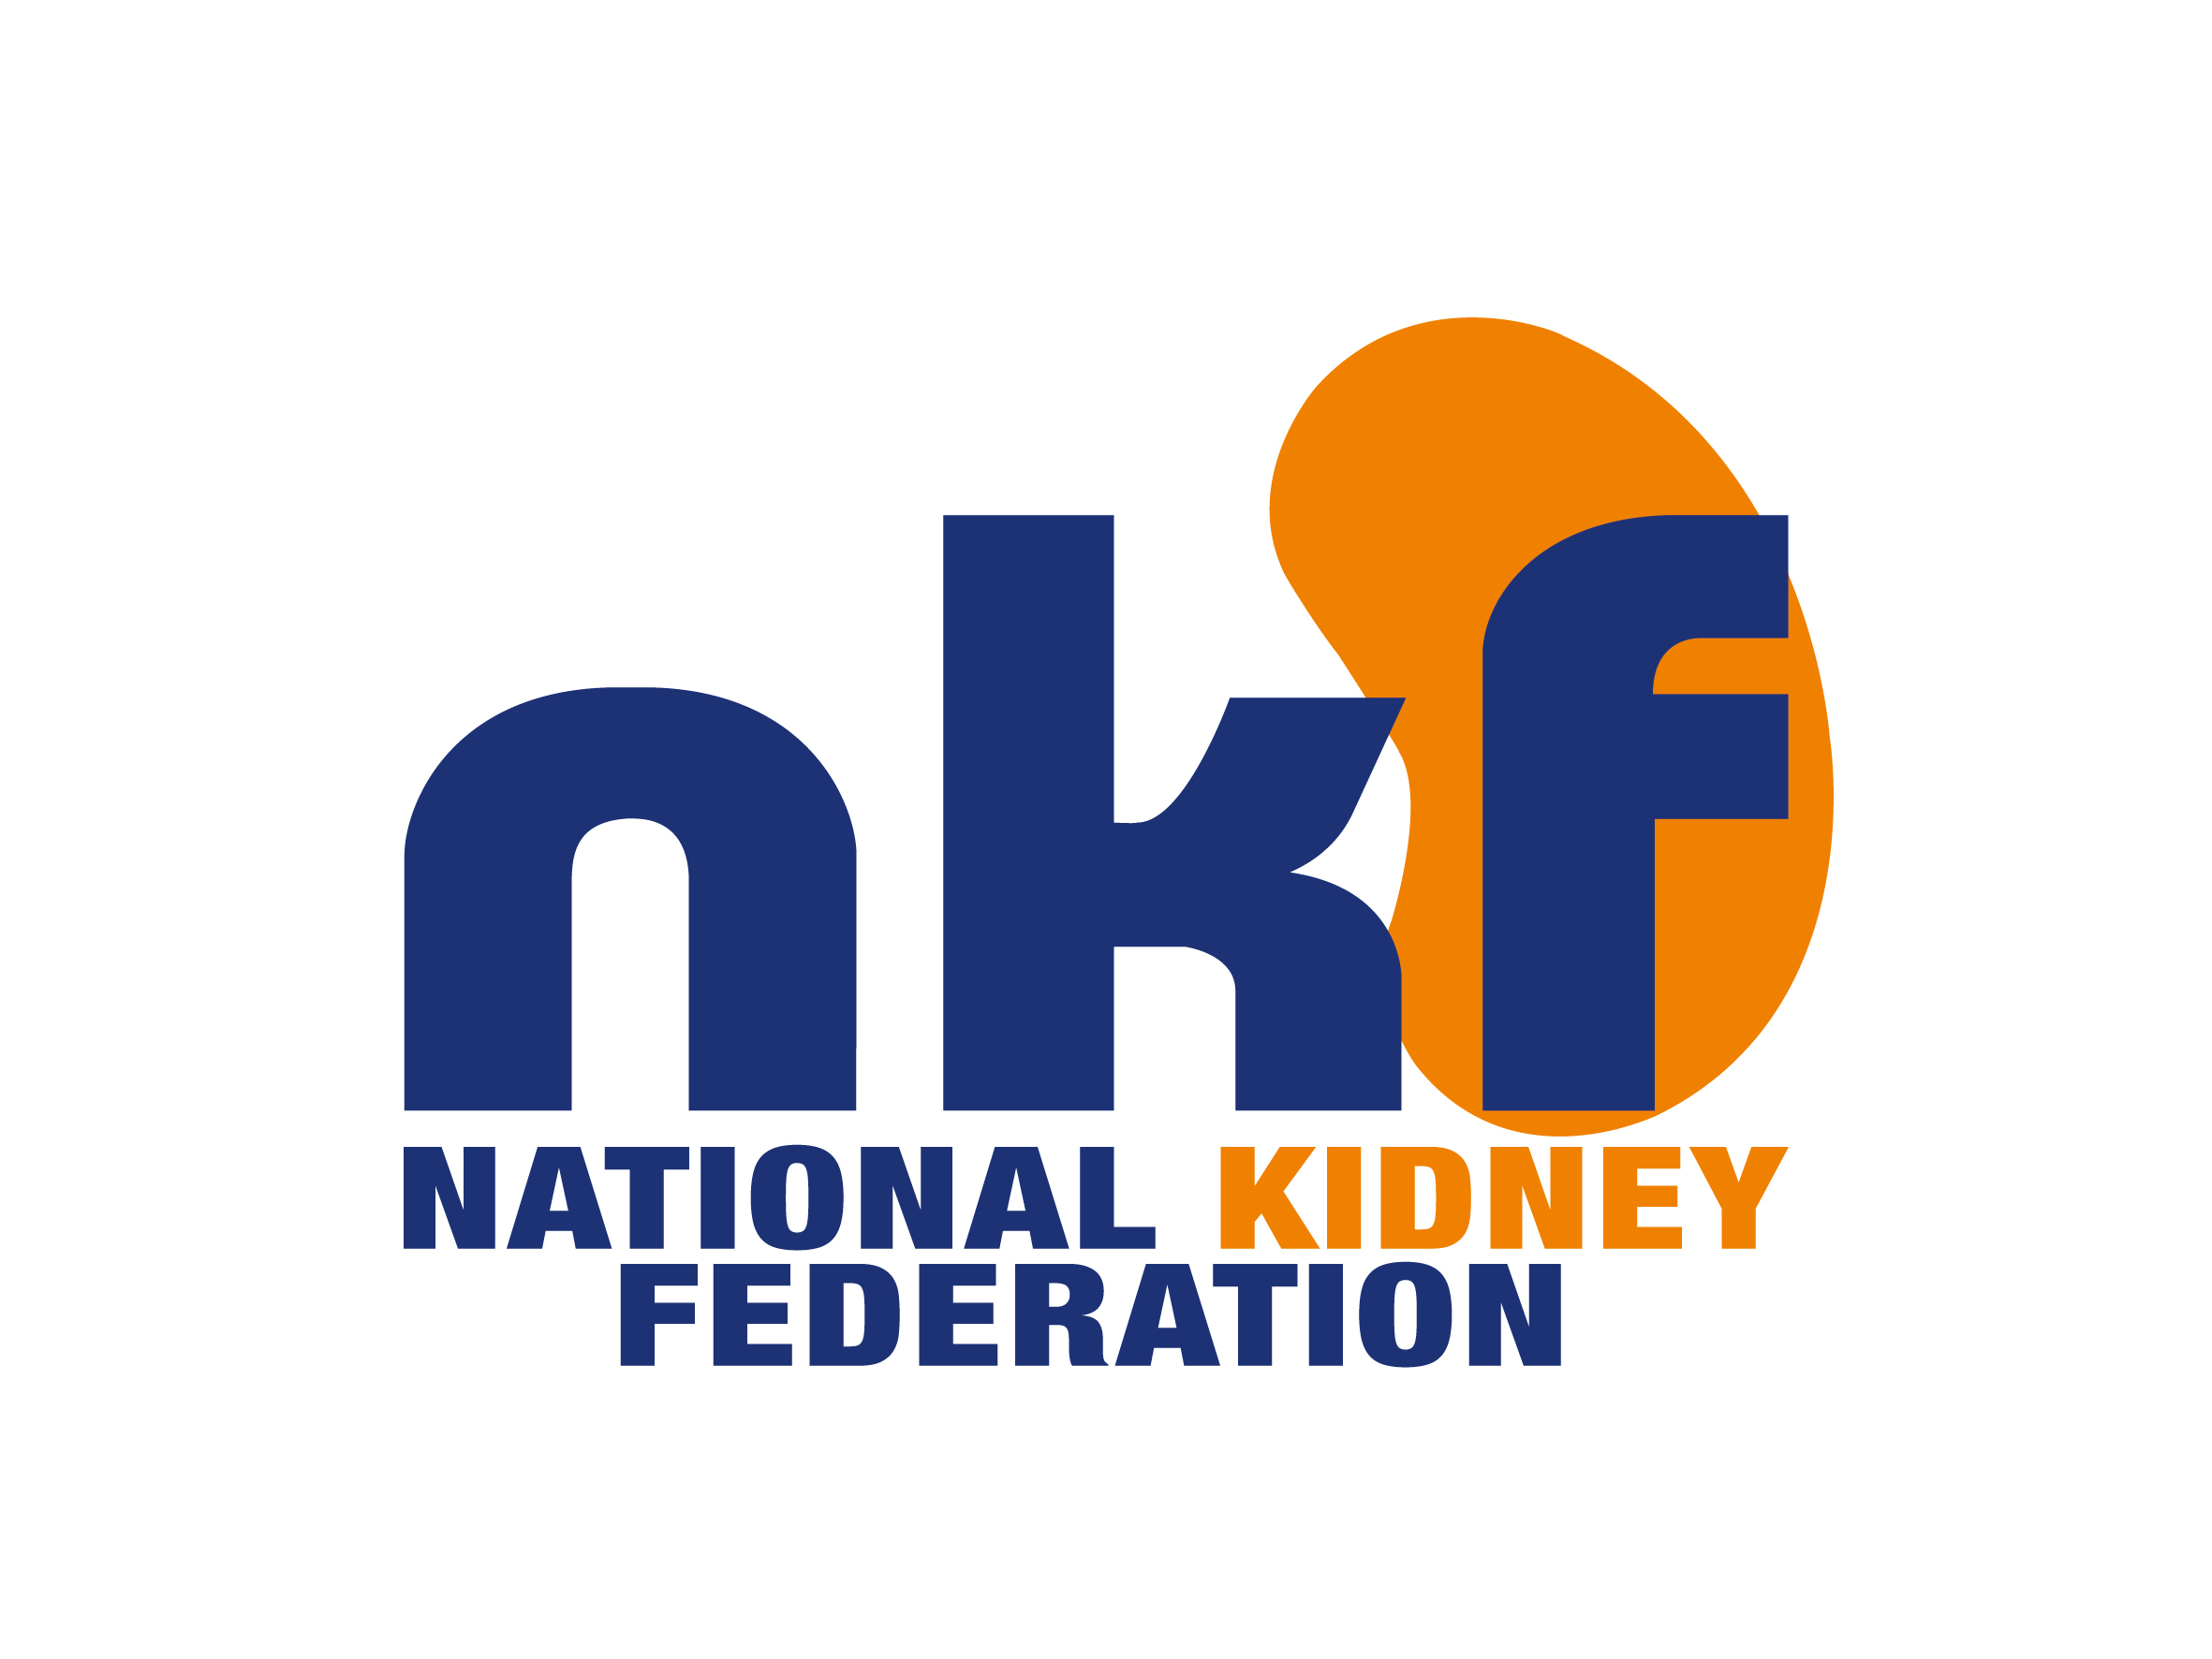 National Kidney Federation